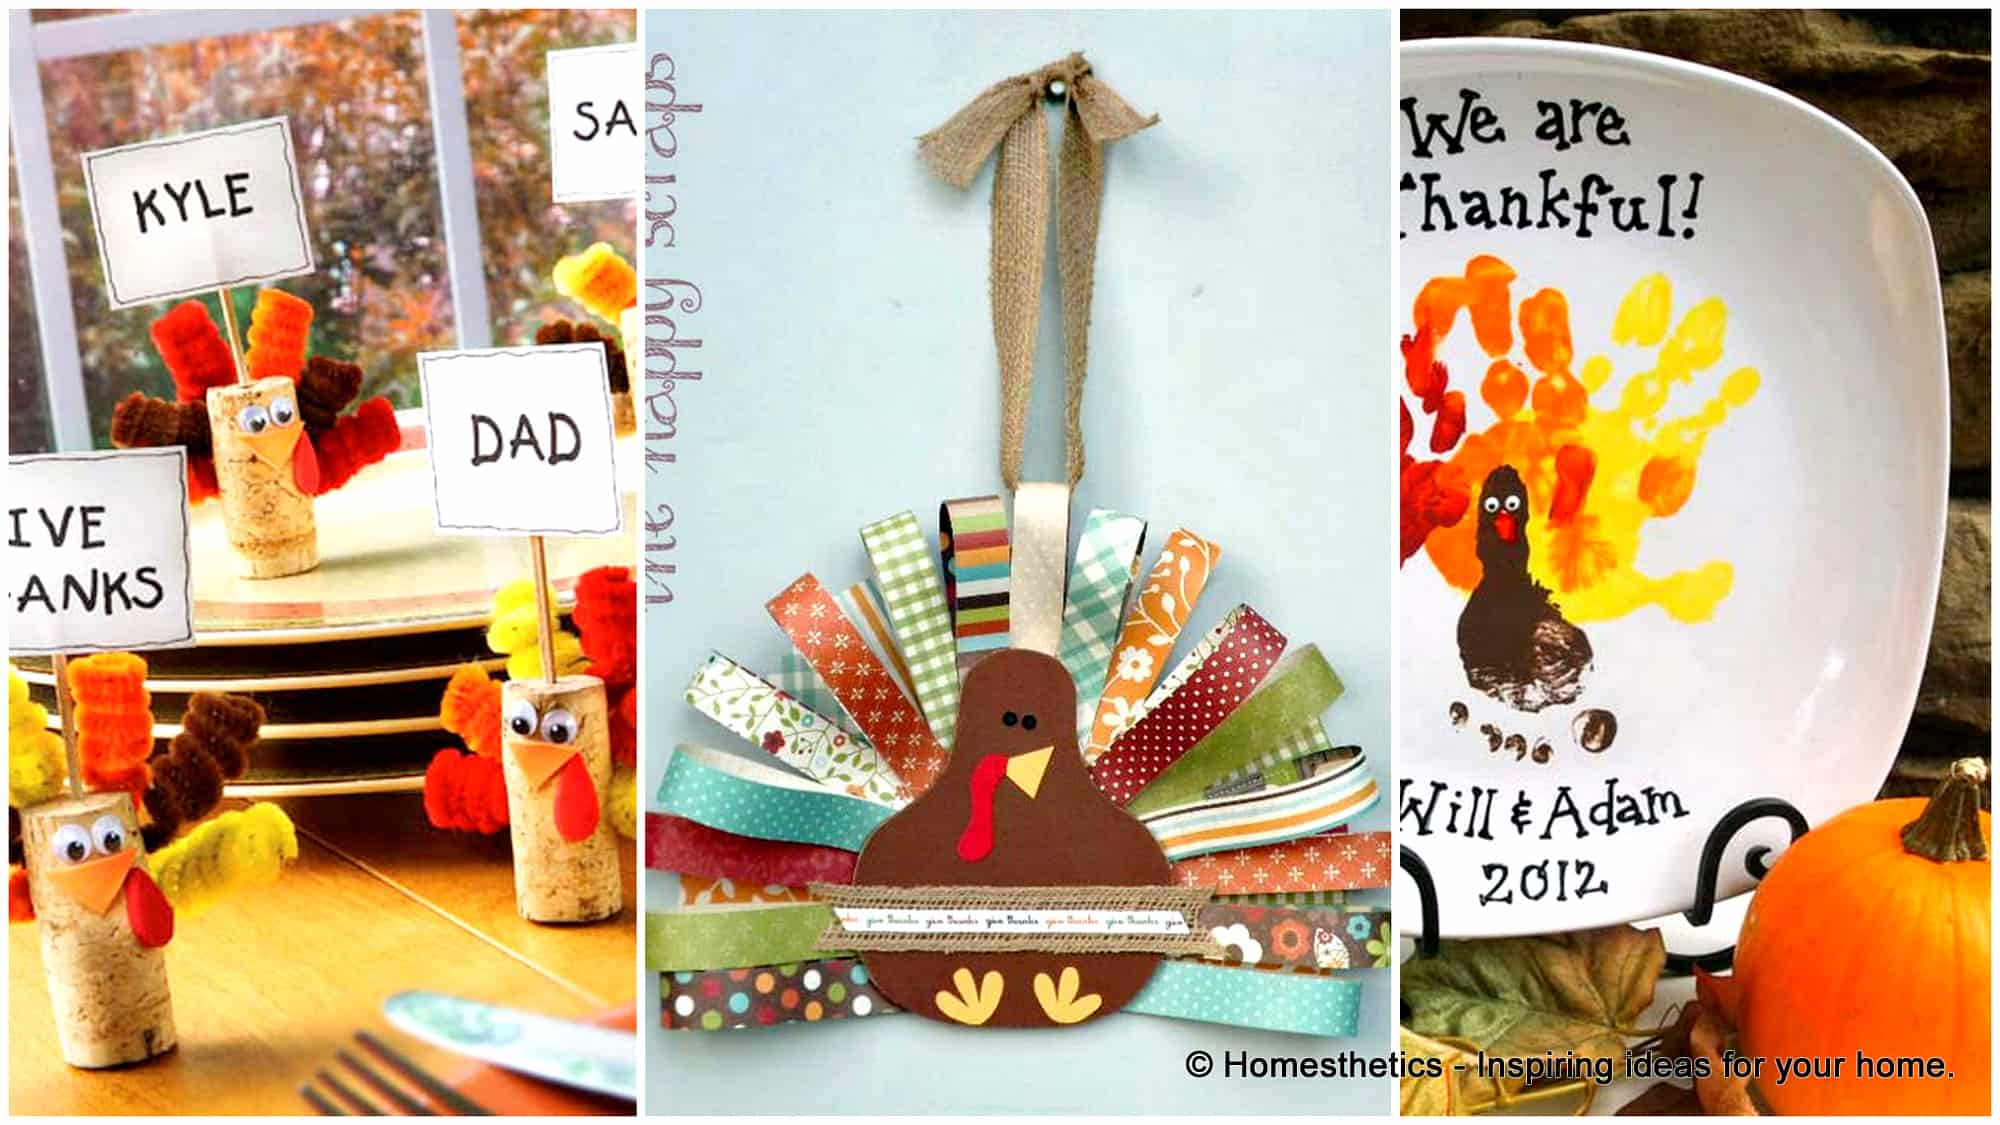 16 Super Smart Last Minute Turkey Inspired Decor and Crafts For Your Thanksgiving